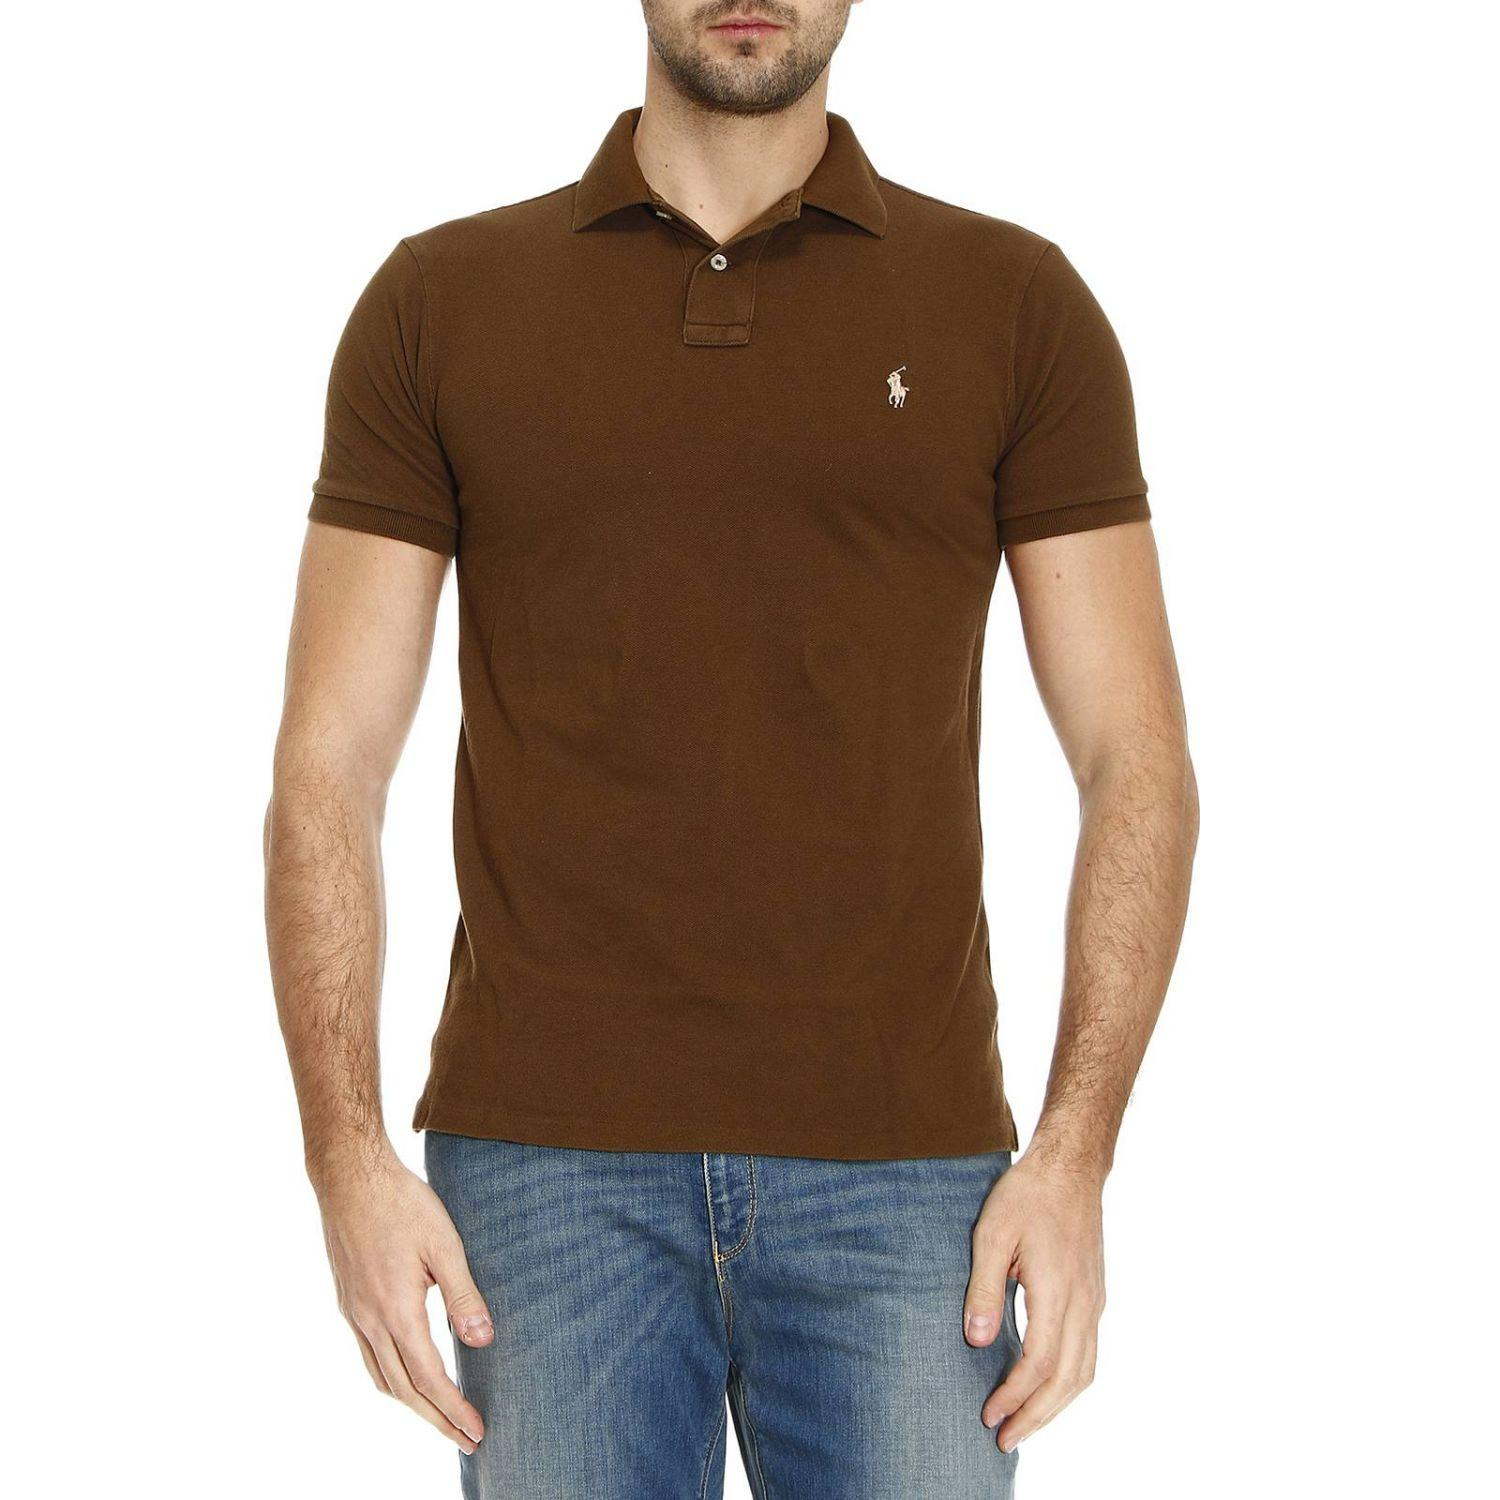 Lyst polo ralph lauren t shirt men in brown for men for Man in polo shirt